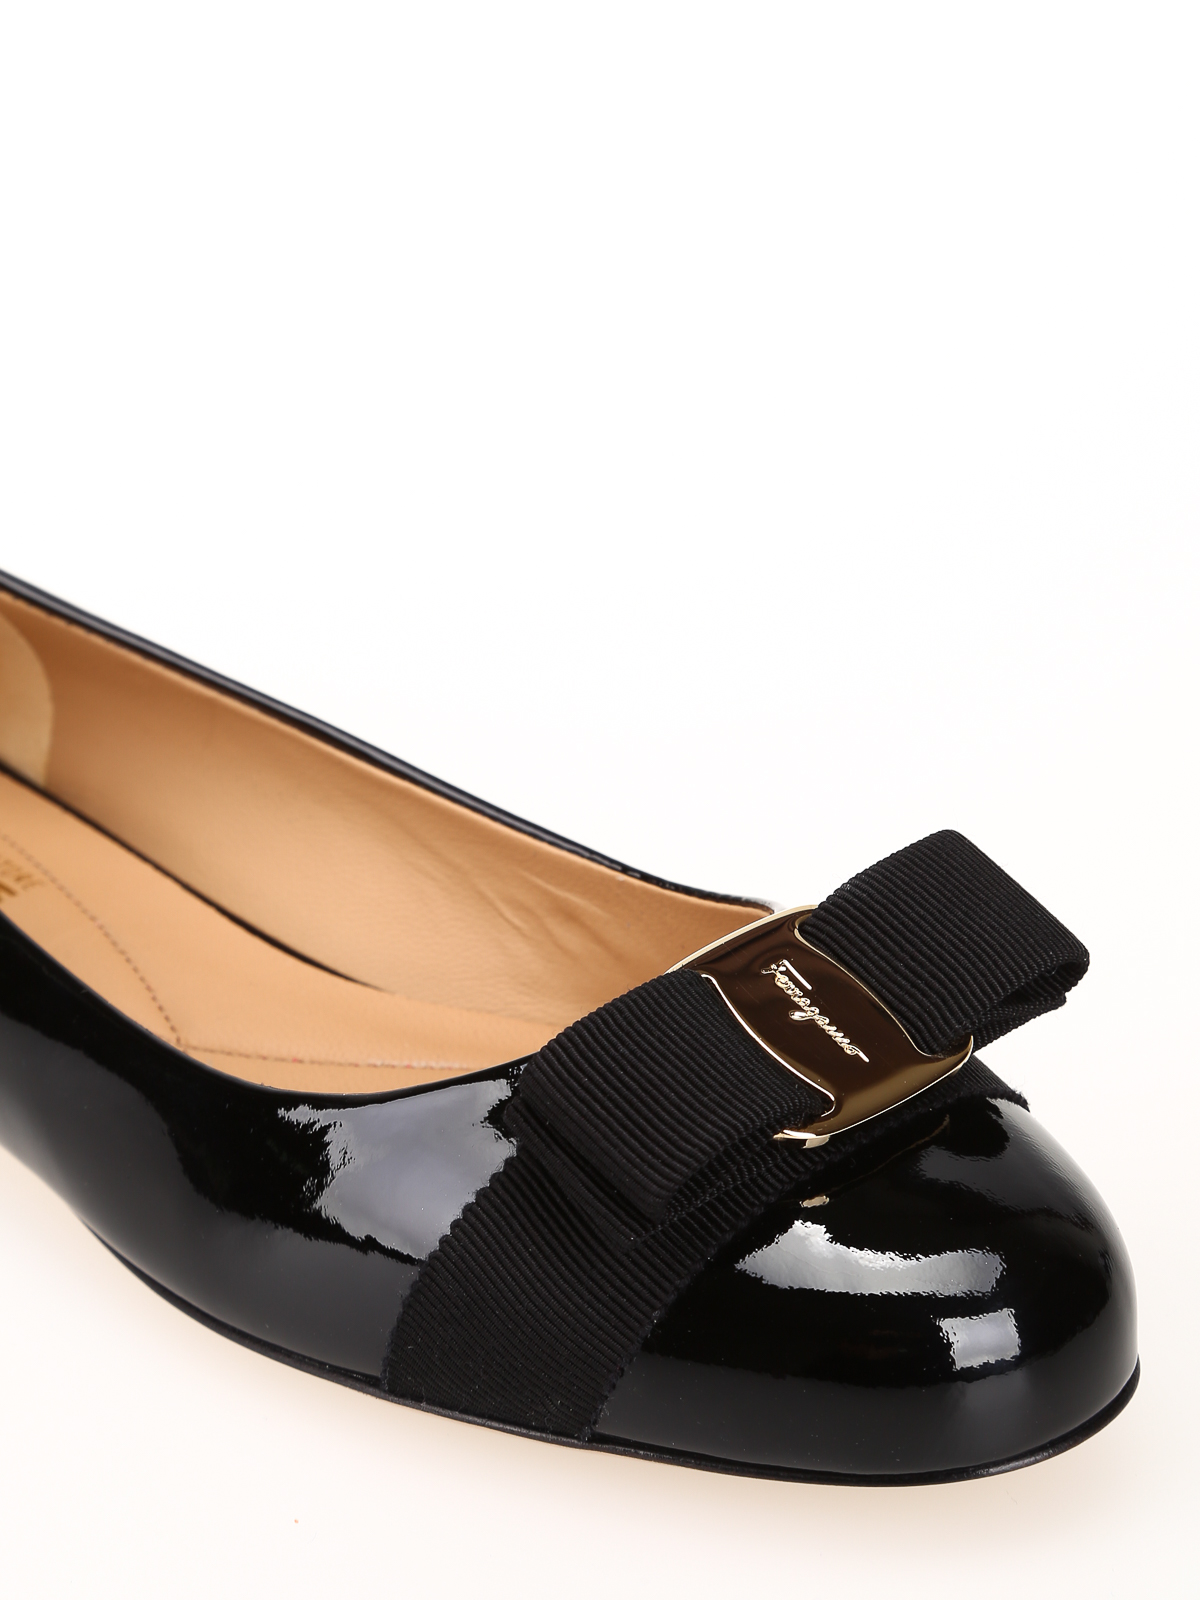 patent leather flat shoes